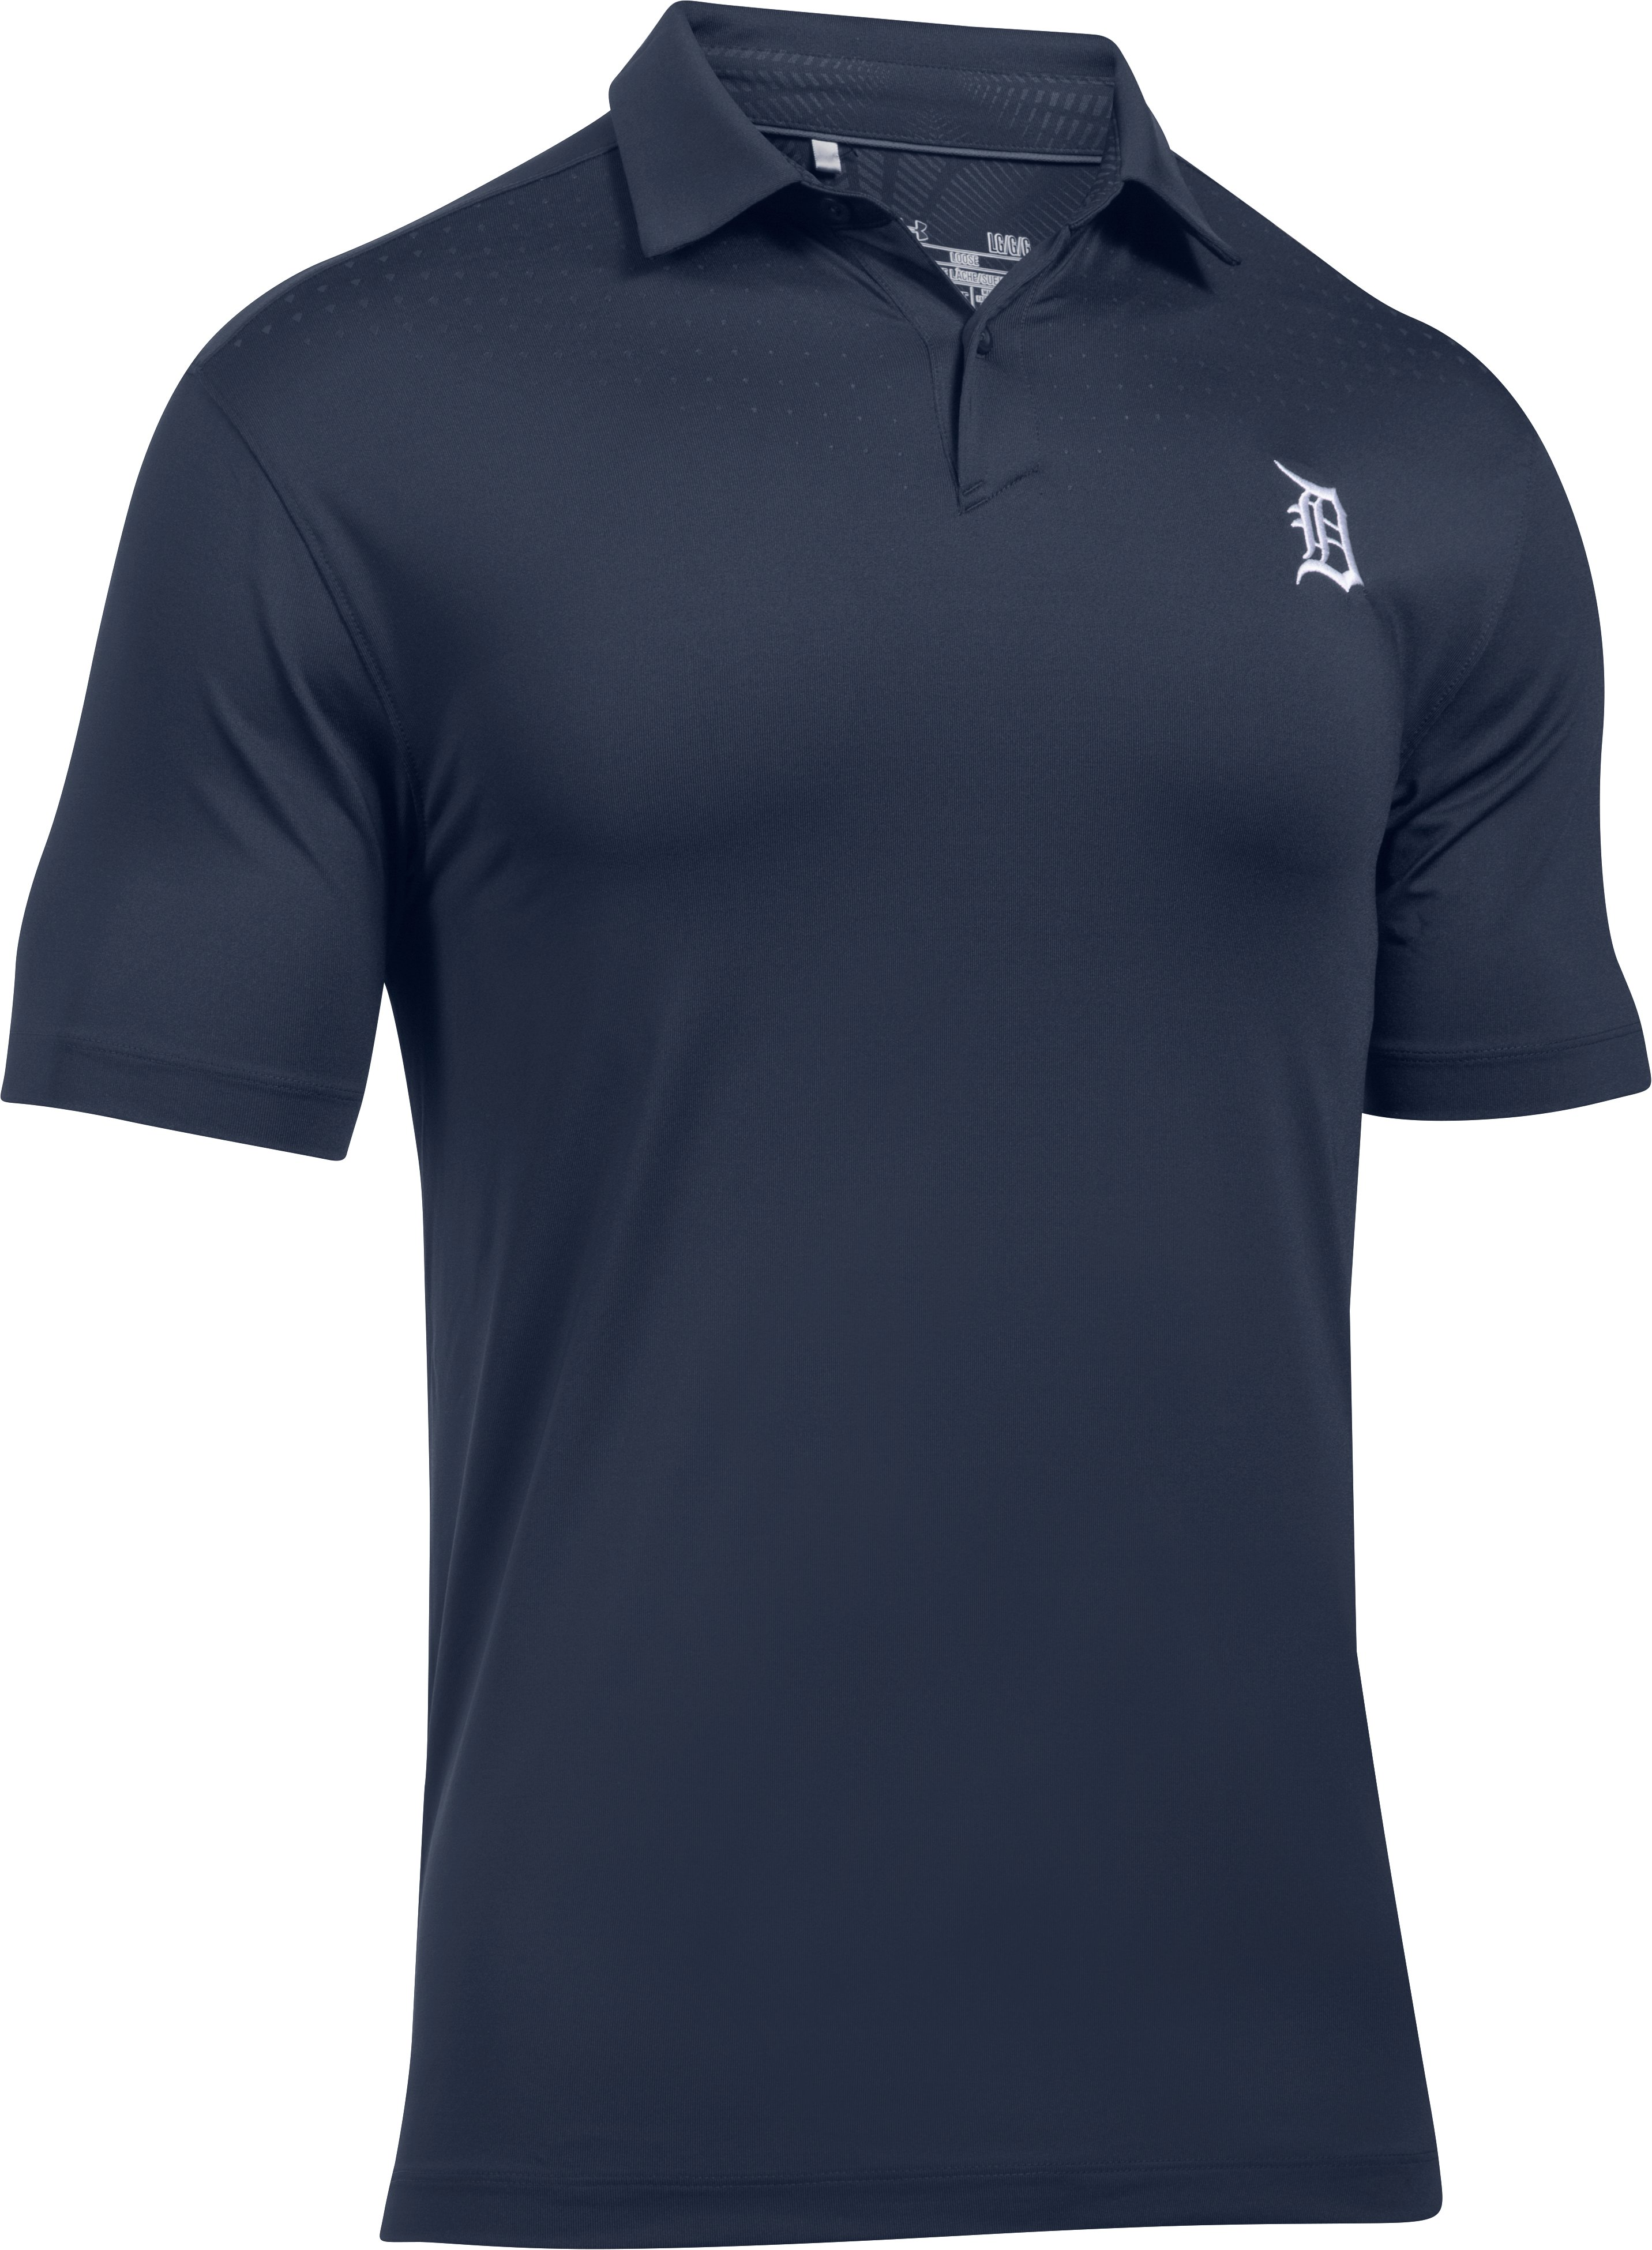 Men's Detroit Tigers CoolSwitch Polo, Midnight Navy, undefined